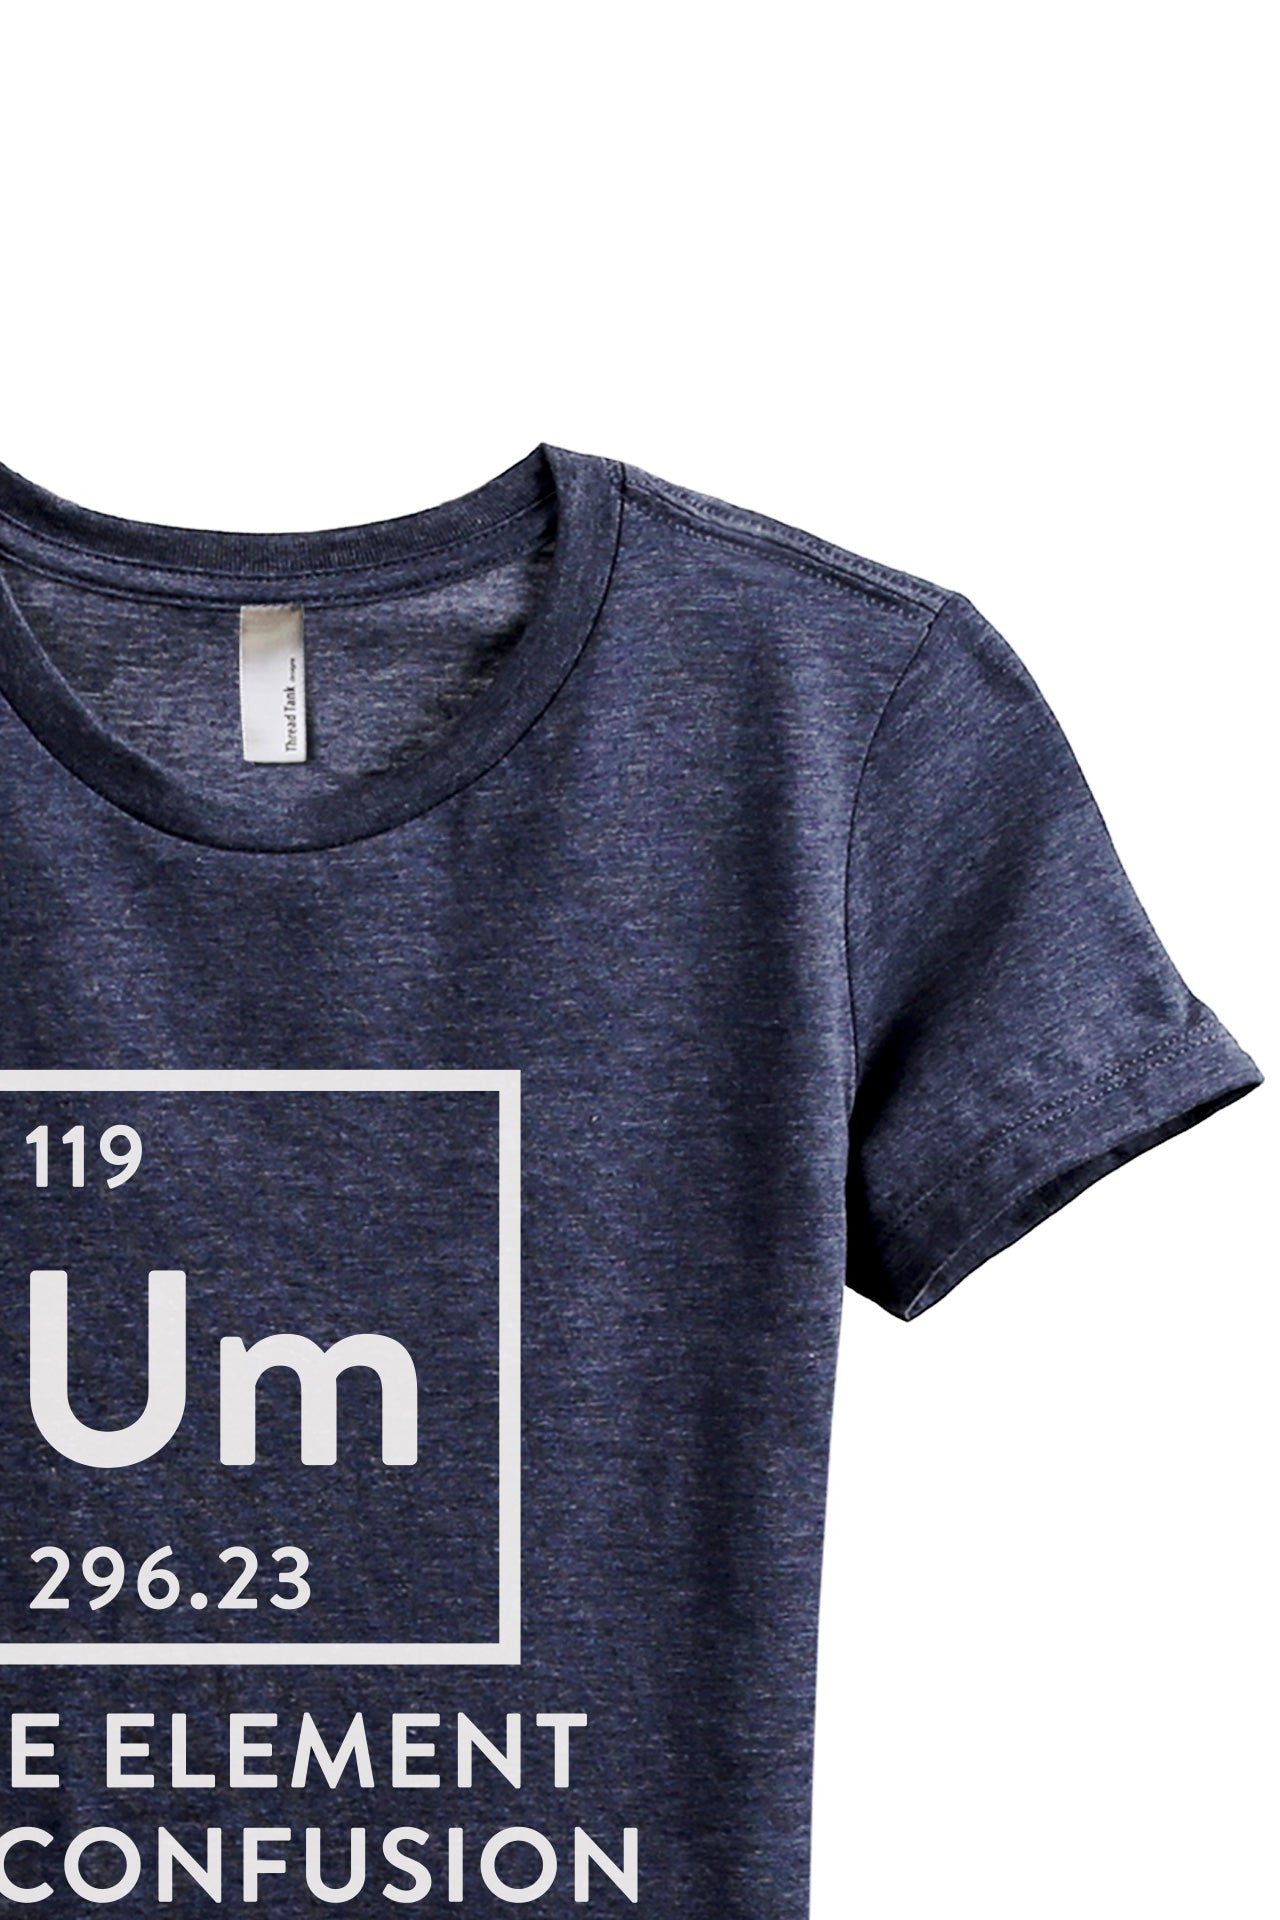 Um Element Of Confusion Women's Relaxed Crewneck T-Shirt Top Tee Heather Navy